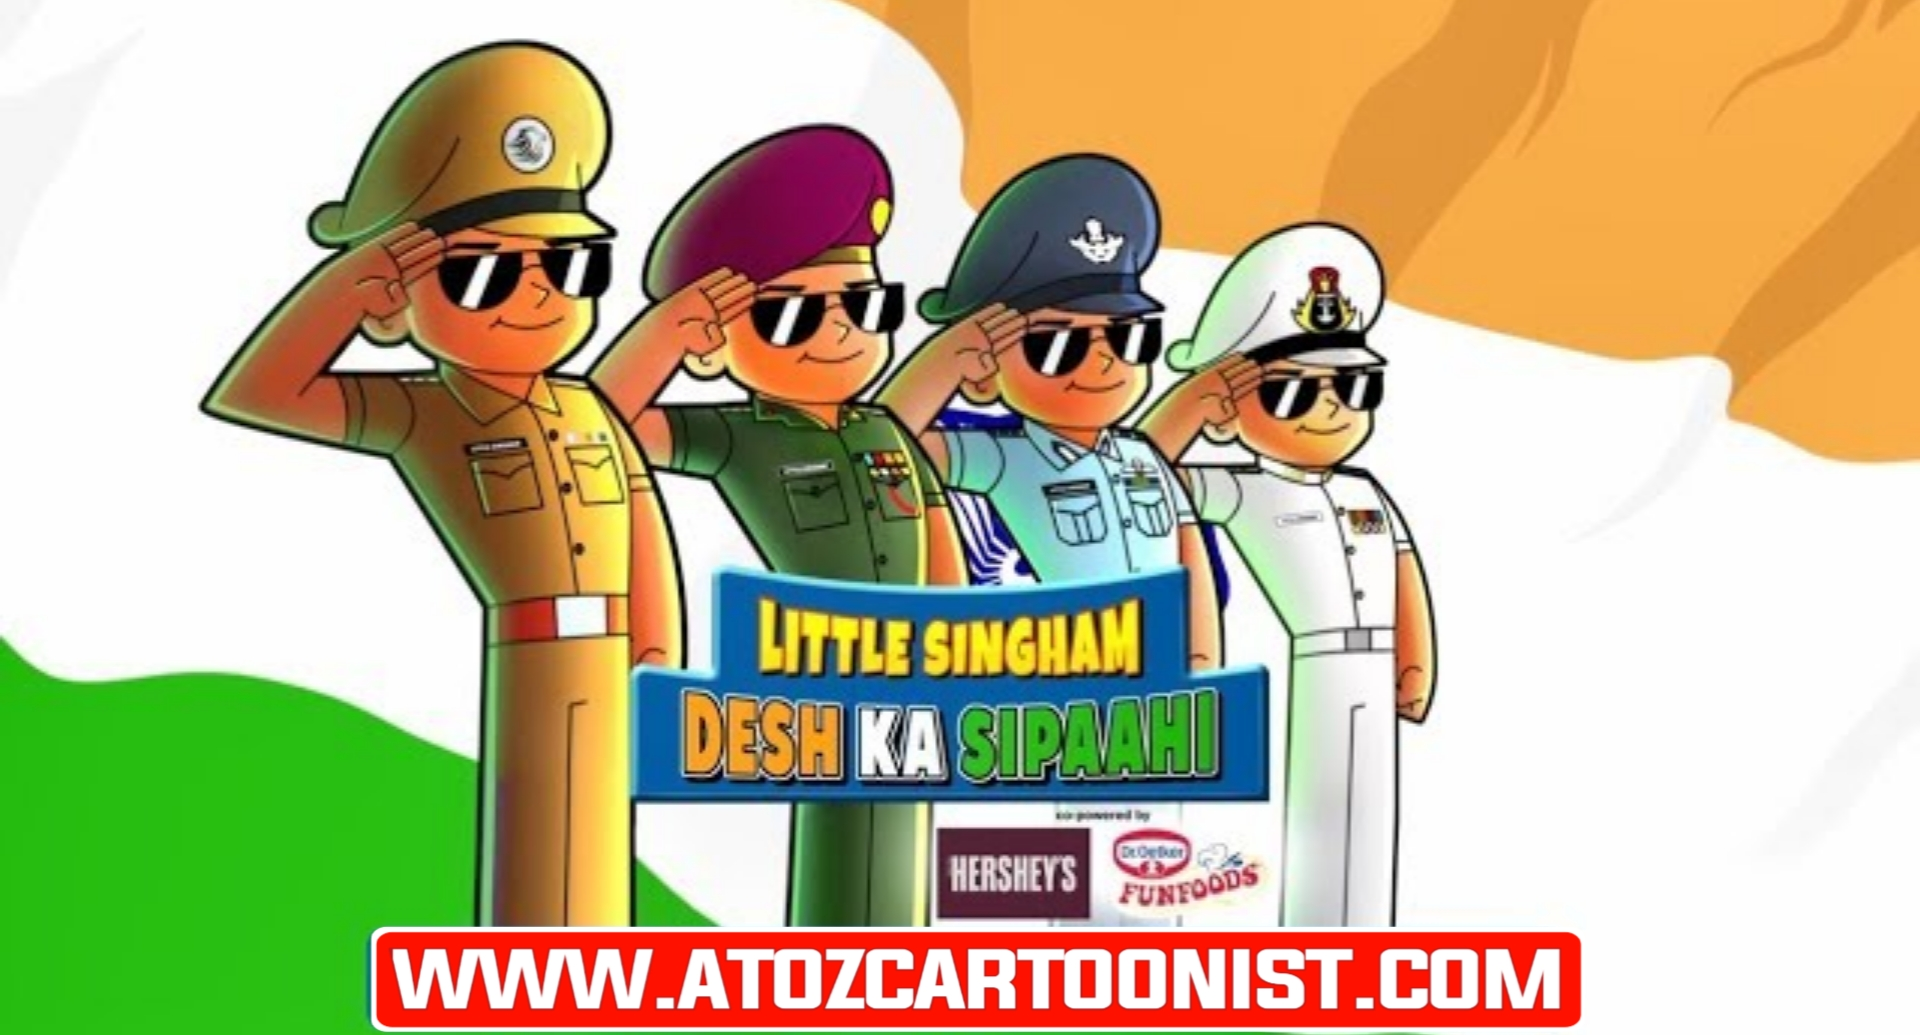 LITTLE SINGHAM : DESH KA SIPAAHI FULL MOVIE IN HINDI DOWNLOAD (480P HALF HD)